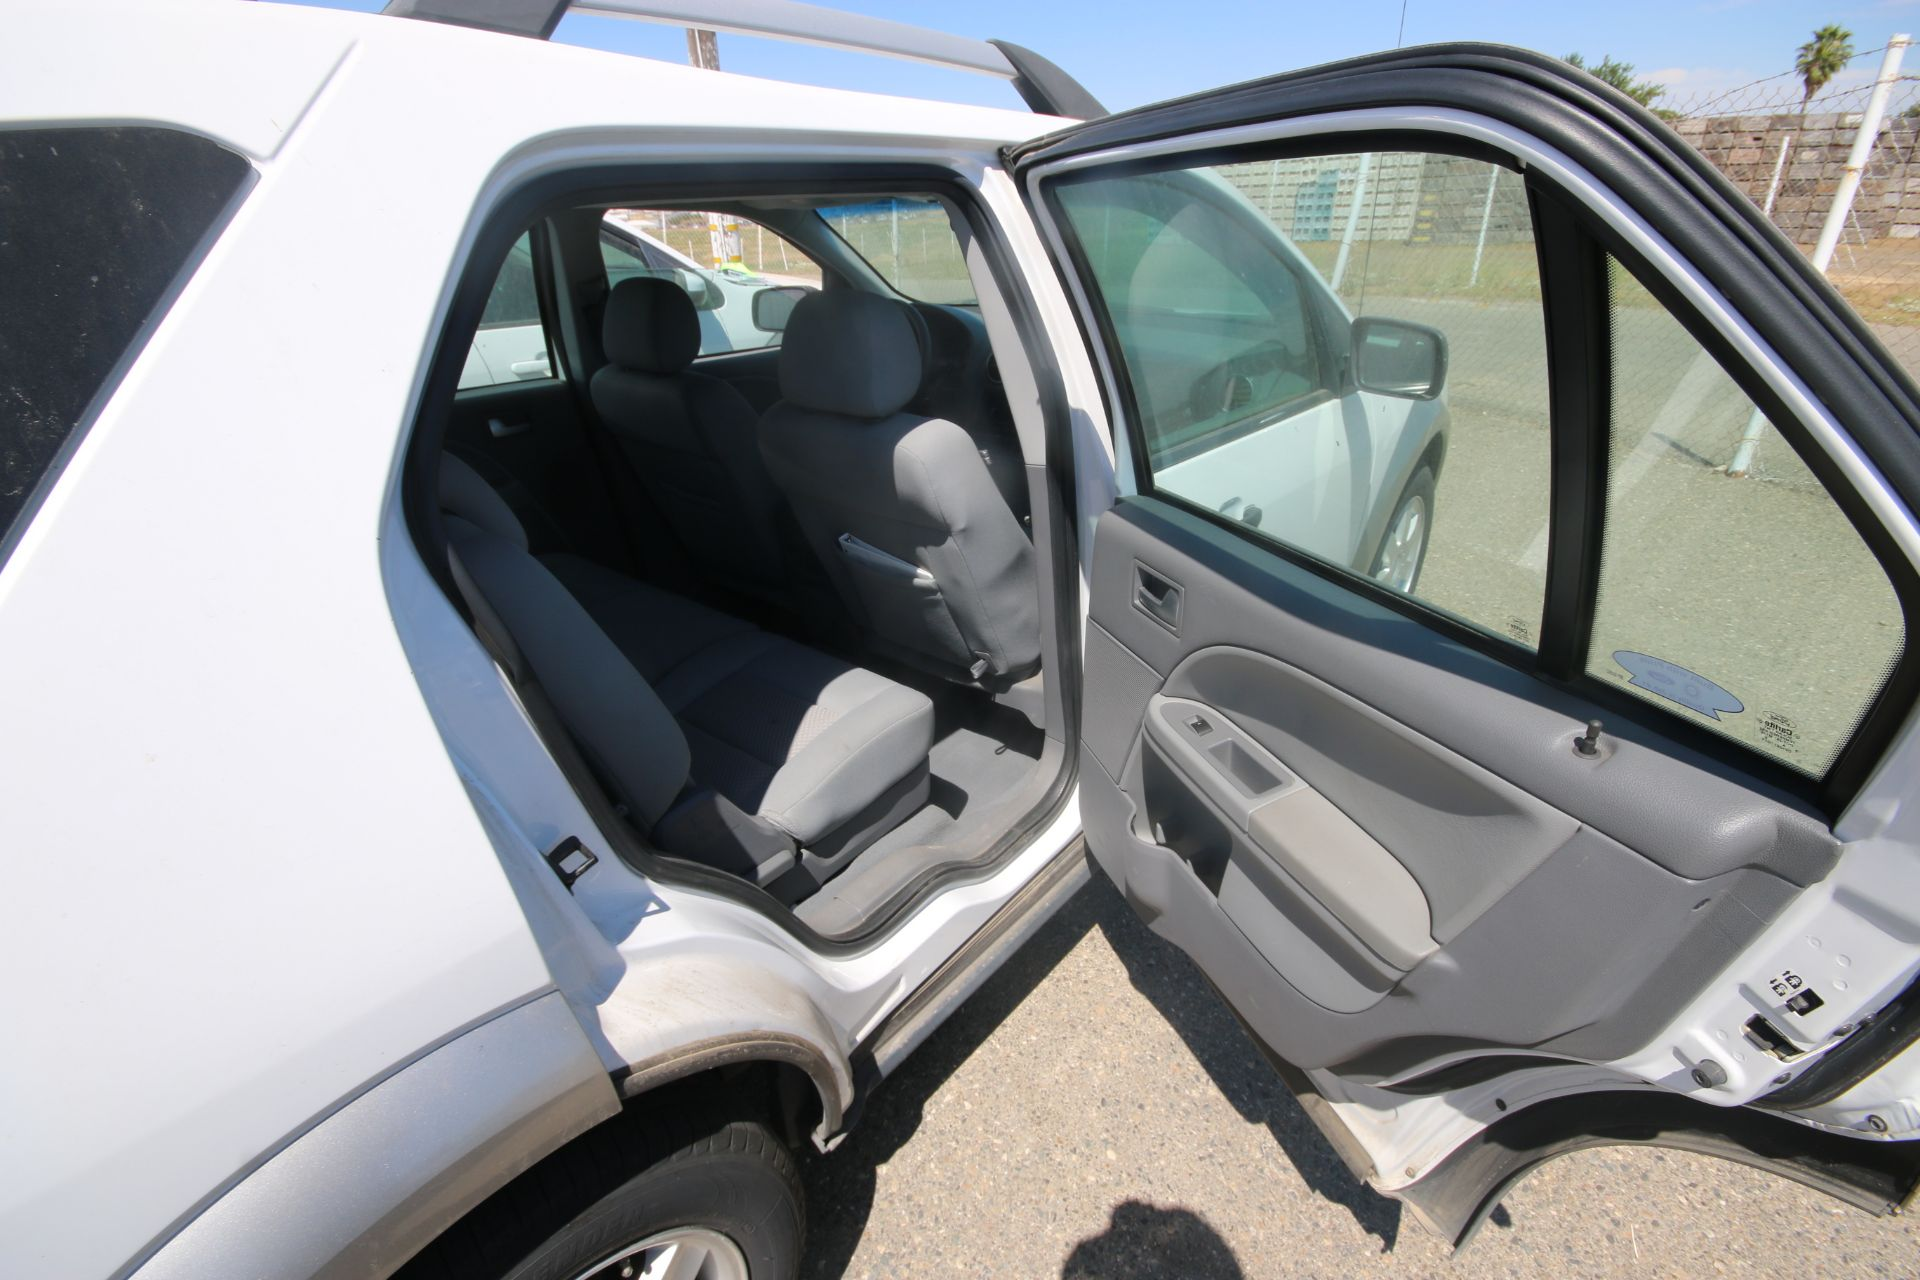 2006 Ford Freestyle, VIN #: 1FMDKO11X6GA41766, with 108,982 Miles, License Plate #: 5NGZ608, Started - Image 8 of 22